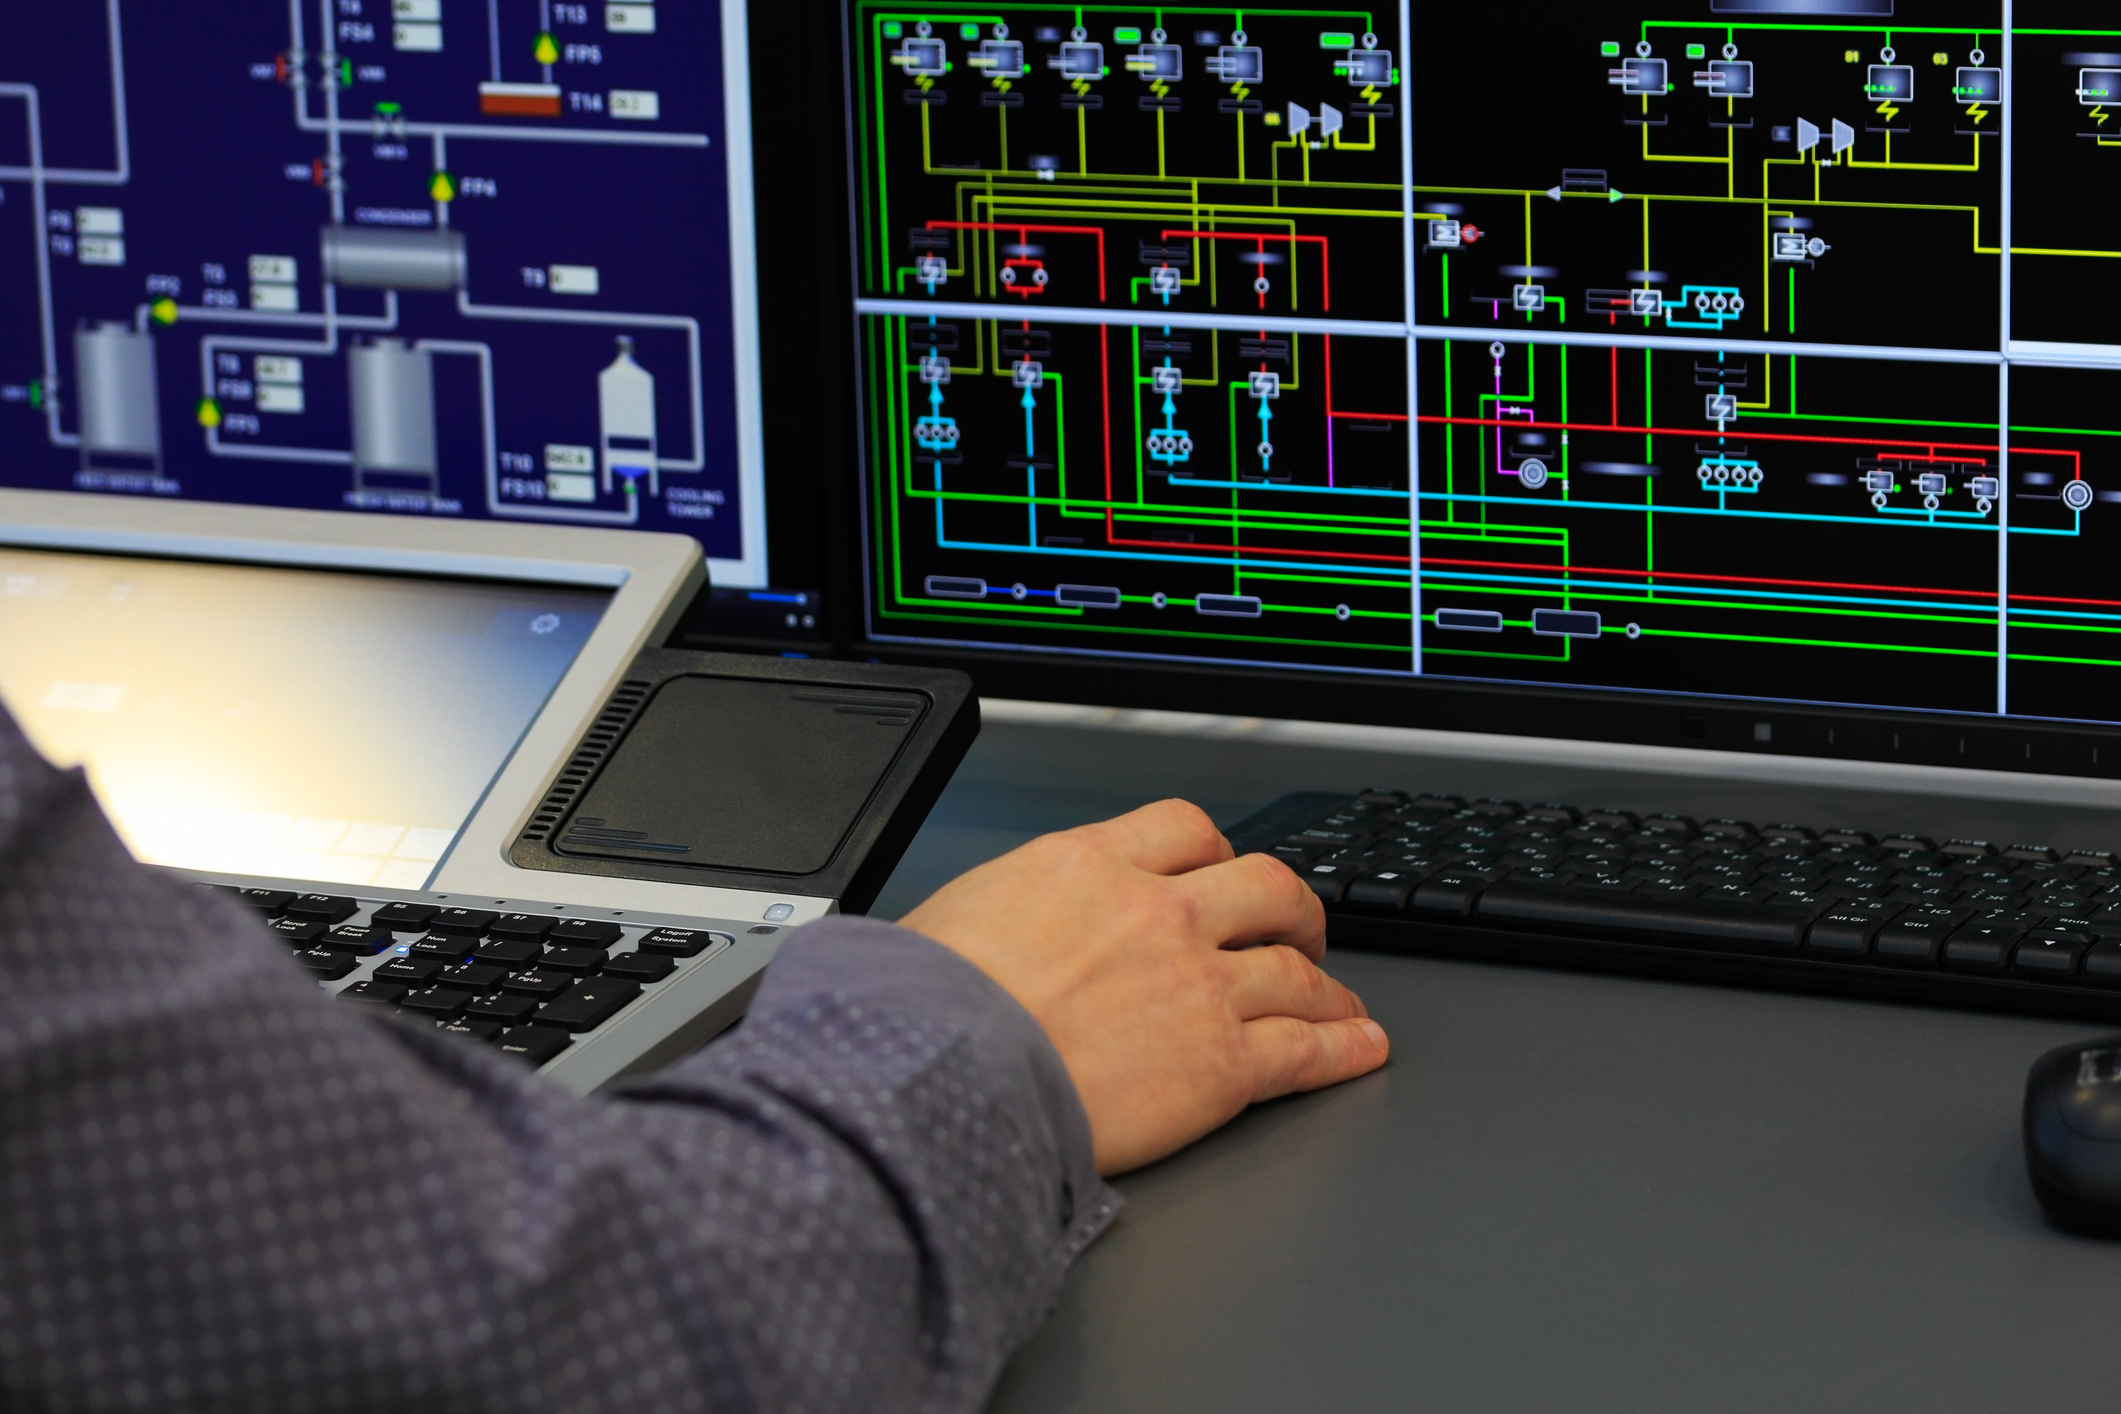 Learn how to secure your SCADA and ICS environment with our hands-on ICS Cybersecurity training.